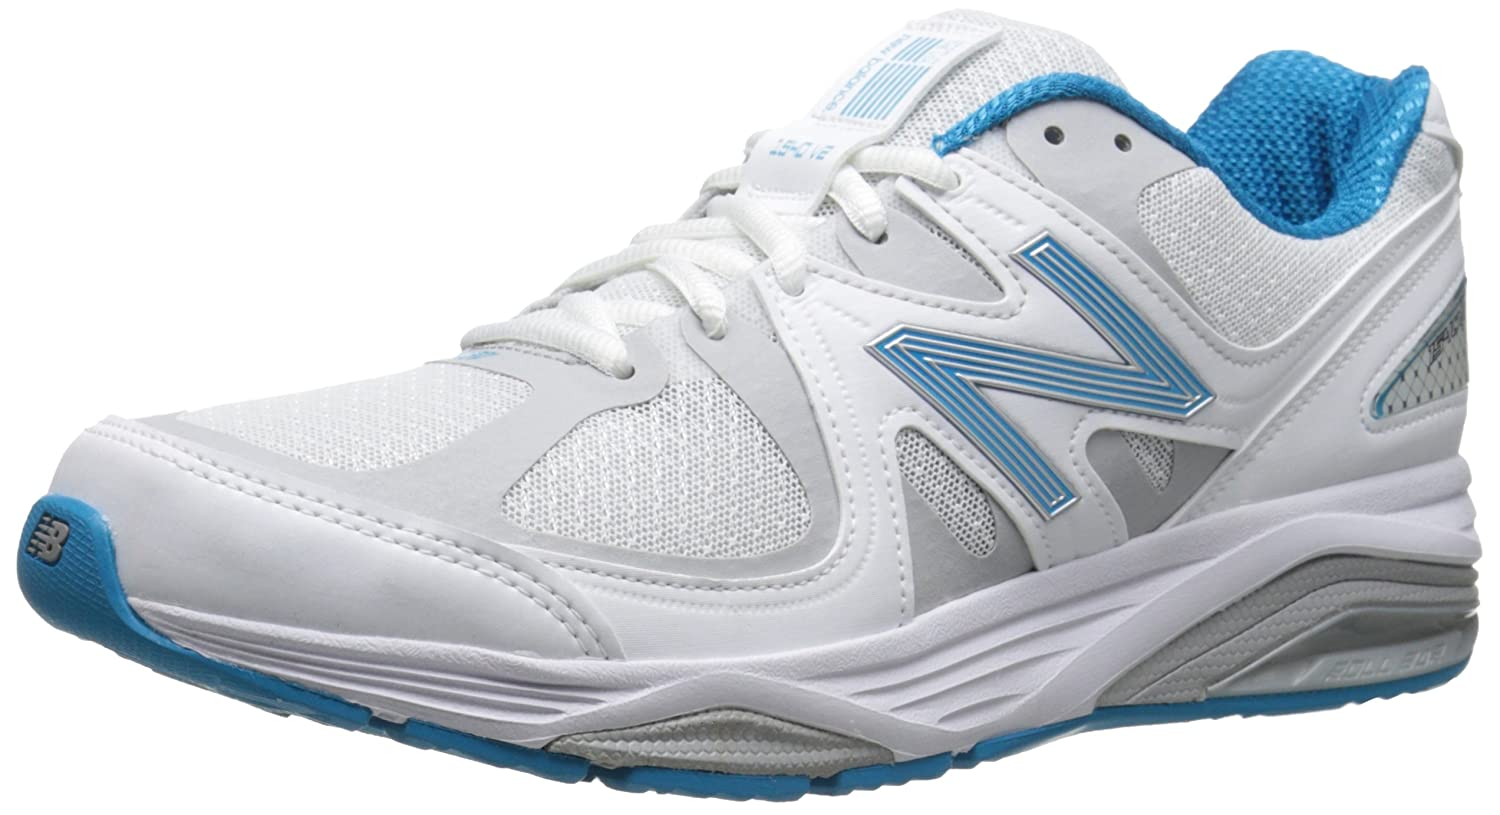 New Balance Women's W1540V2 Running Shoe B00LBZ089G 10.5 2E US|White/Blue